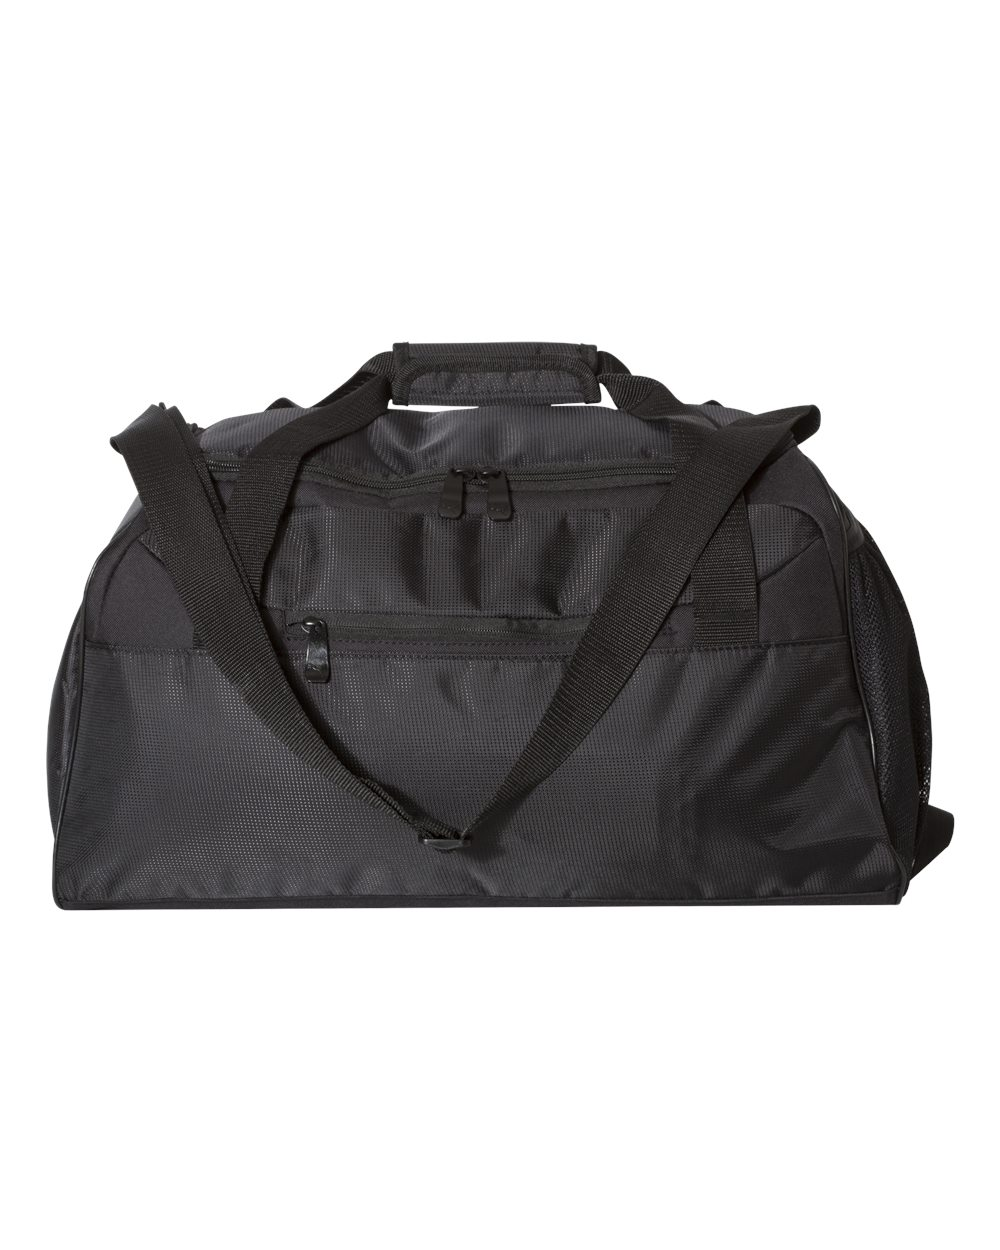 36L Duffel Bag-Puma